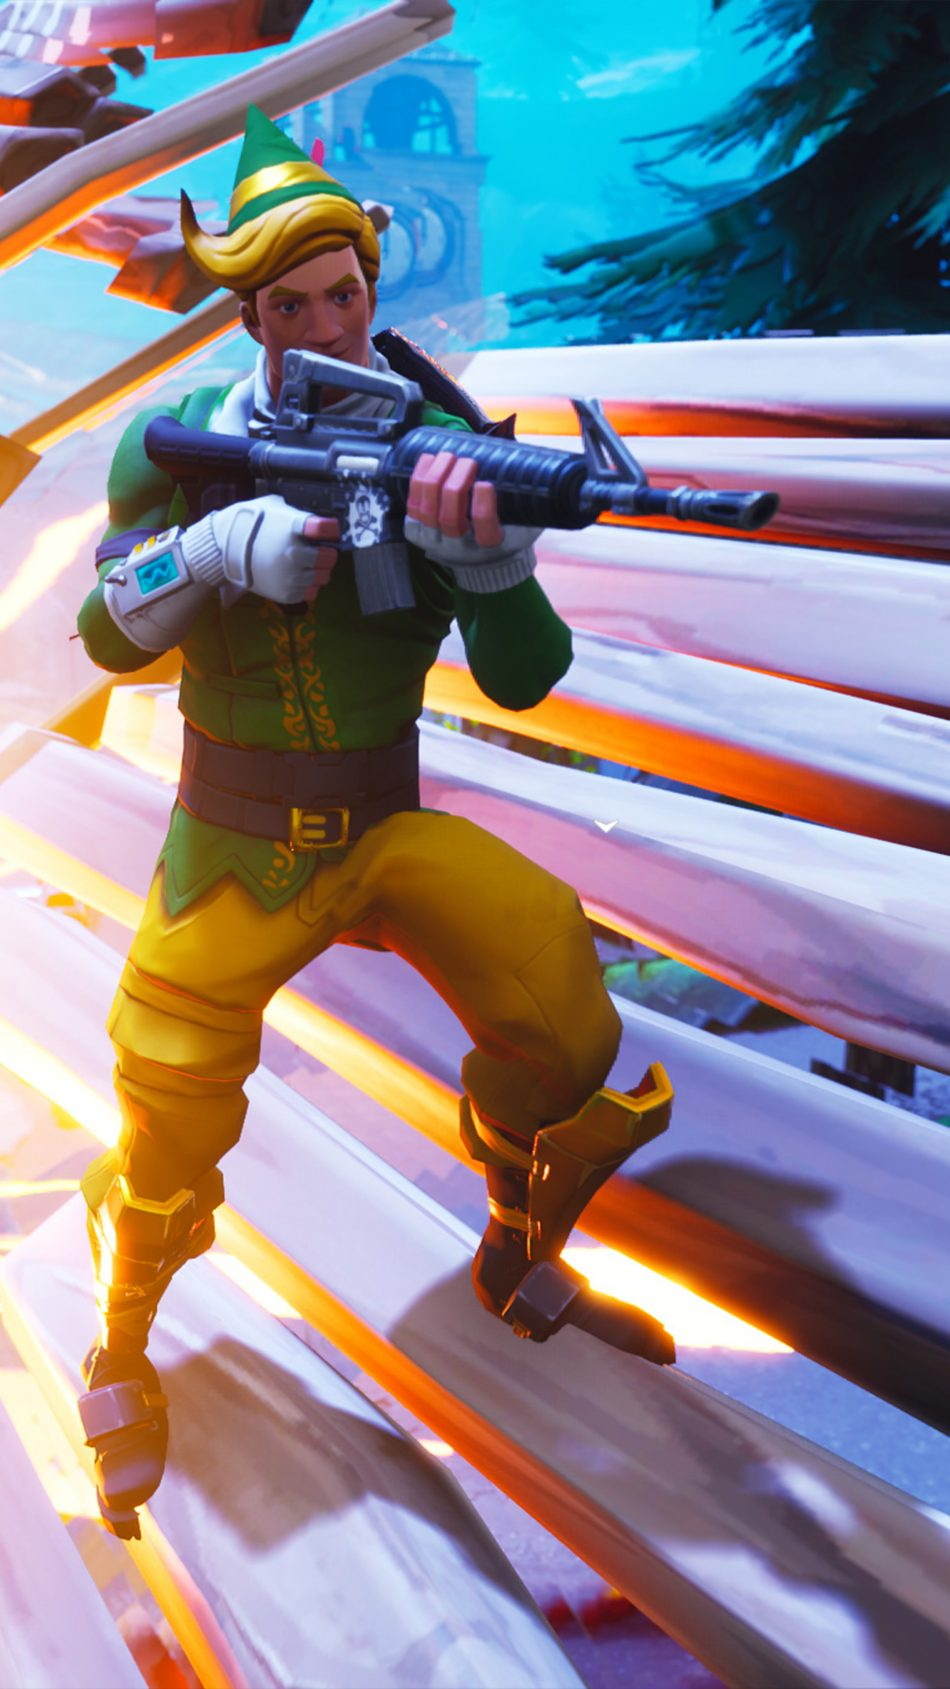 Fortnite Battle Royale Season 6 4k Ultra Hd Mobile Wallpaper